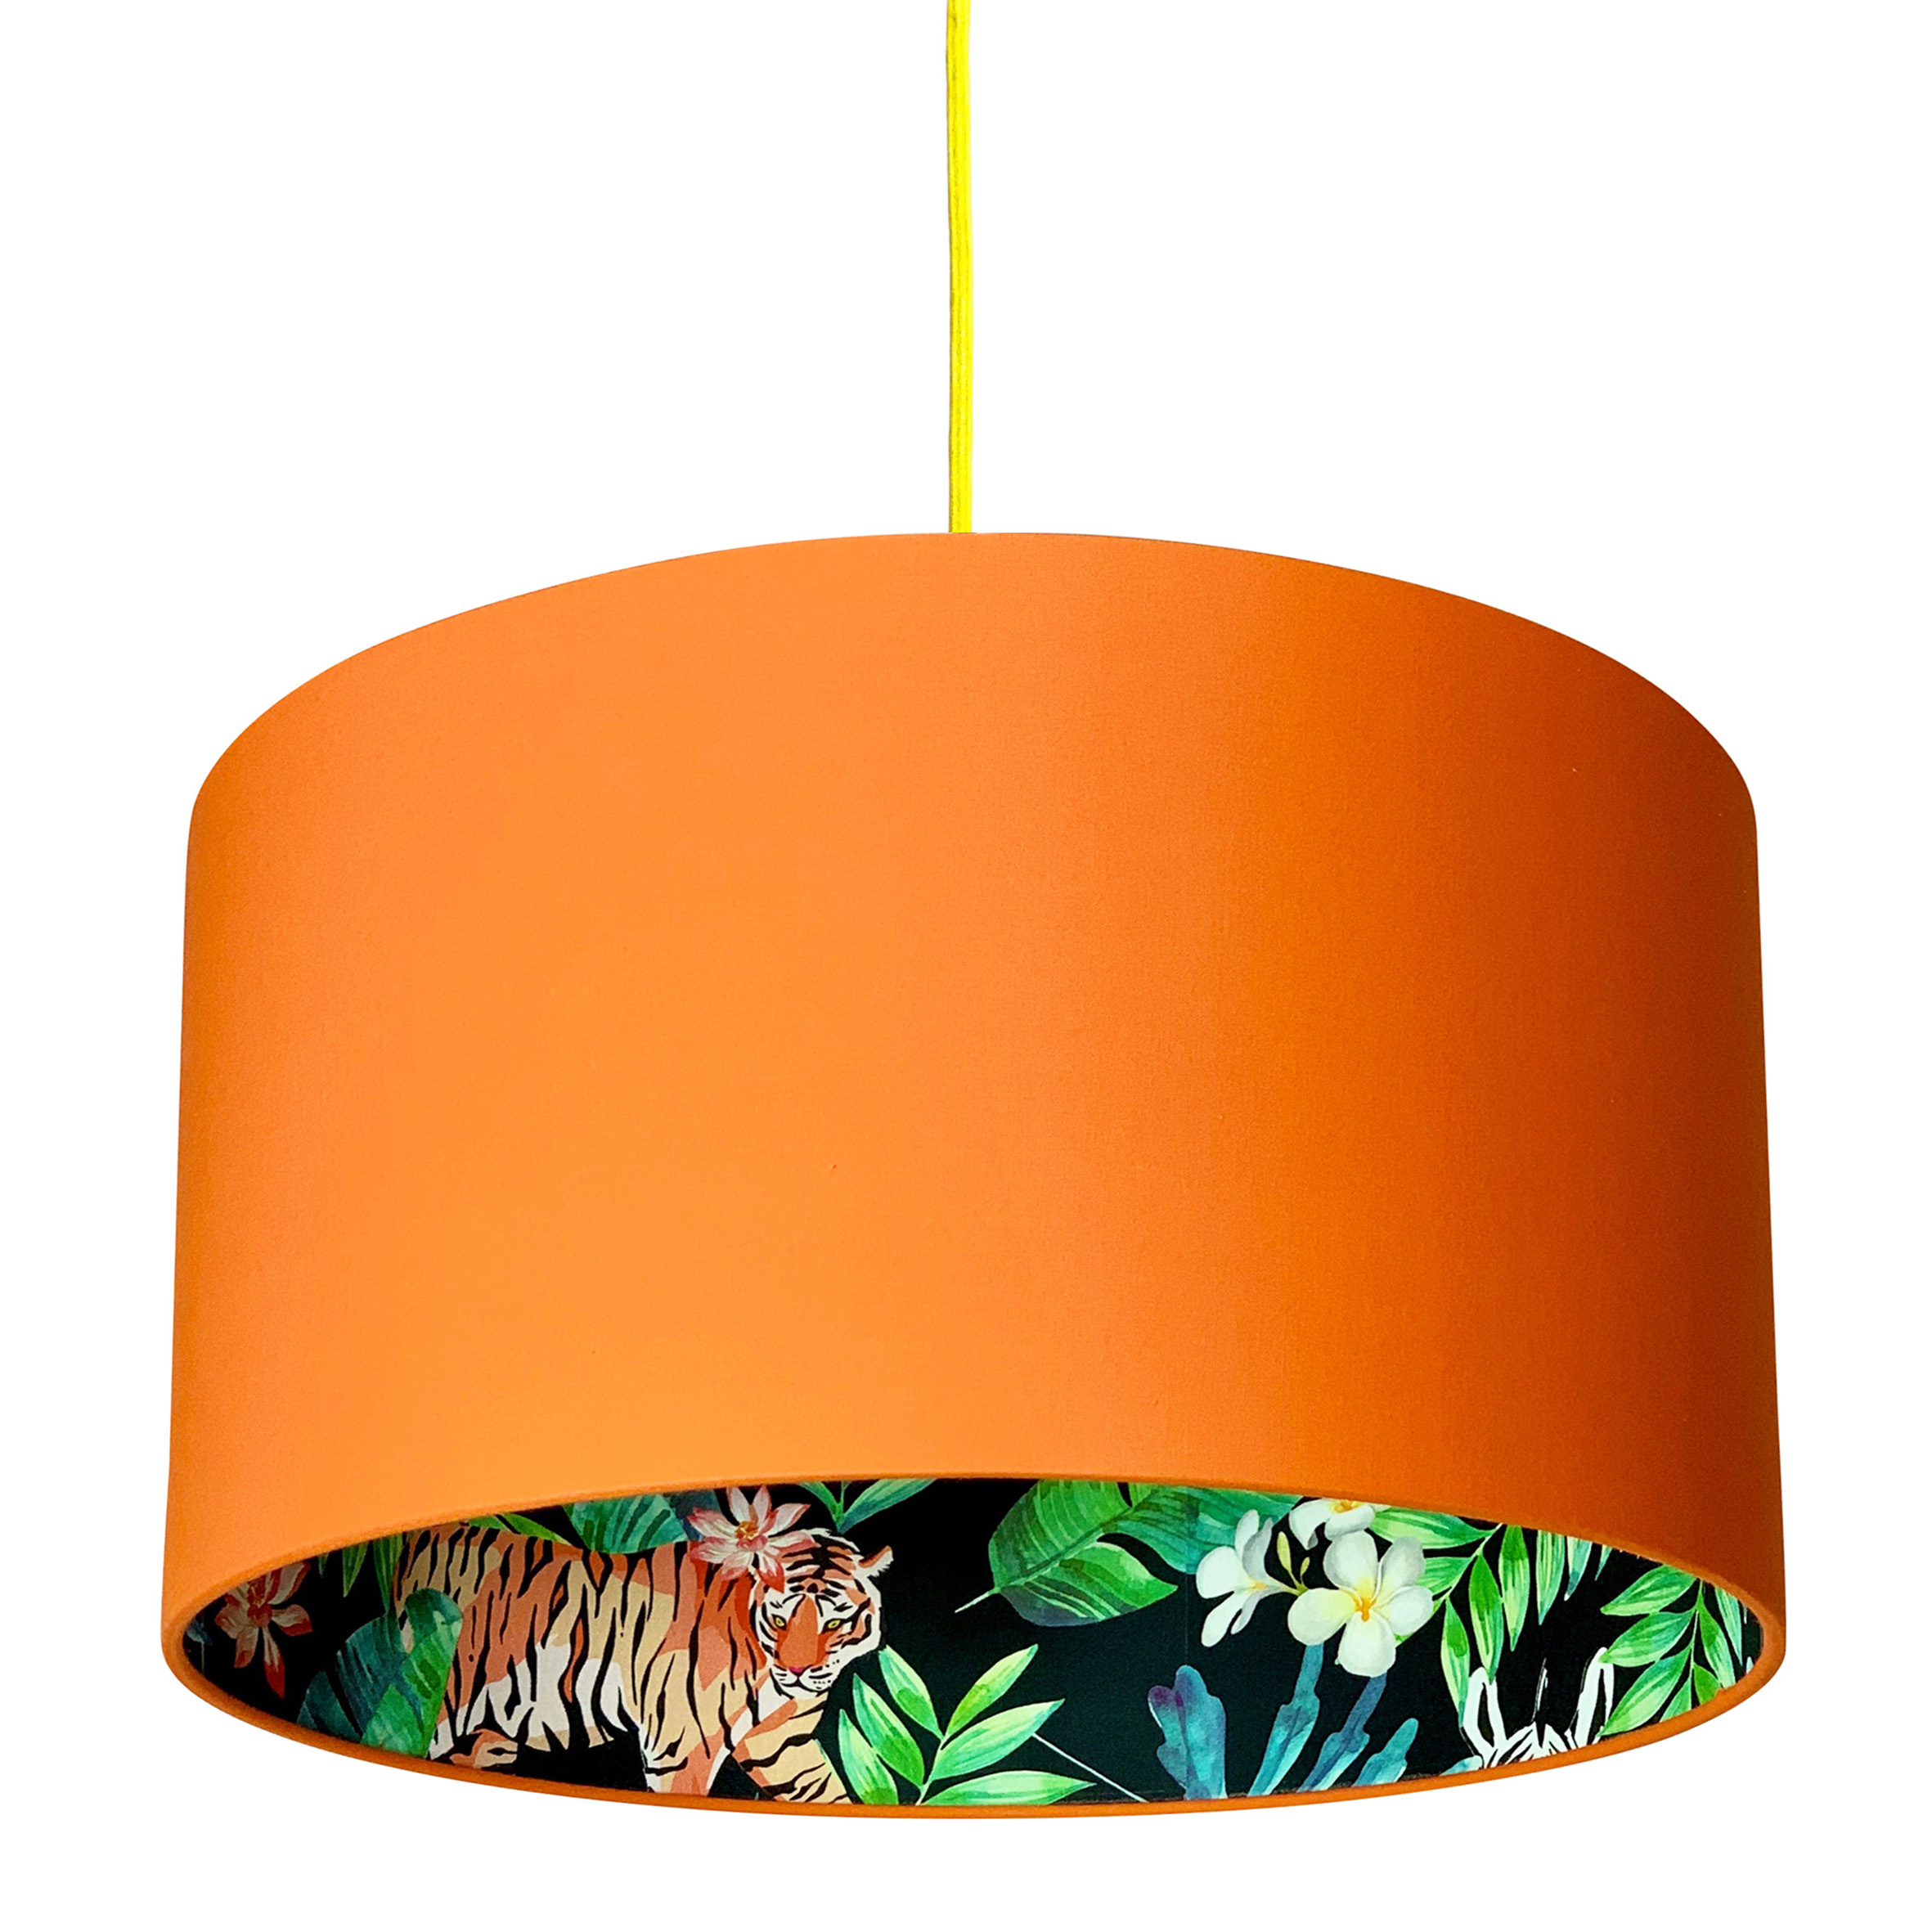 Cheetah Print Jungle Decor Lamp Shade